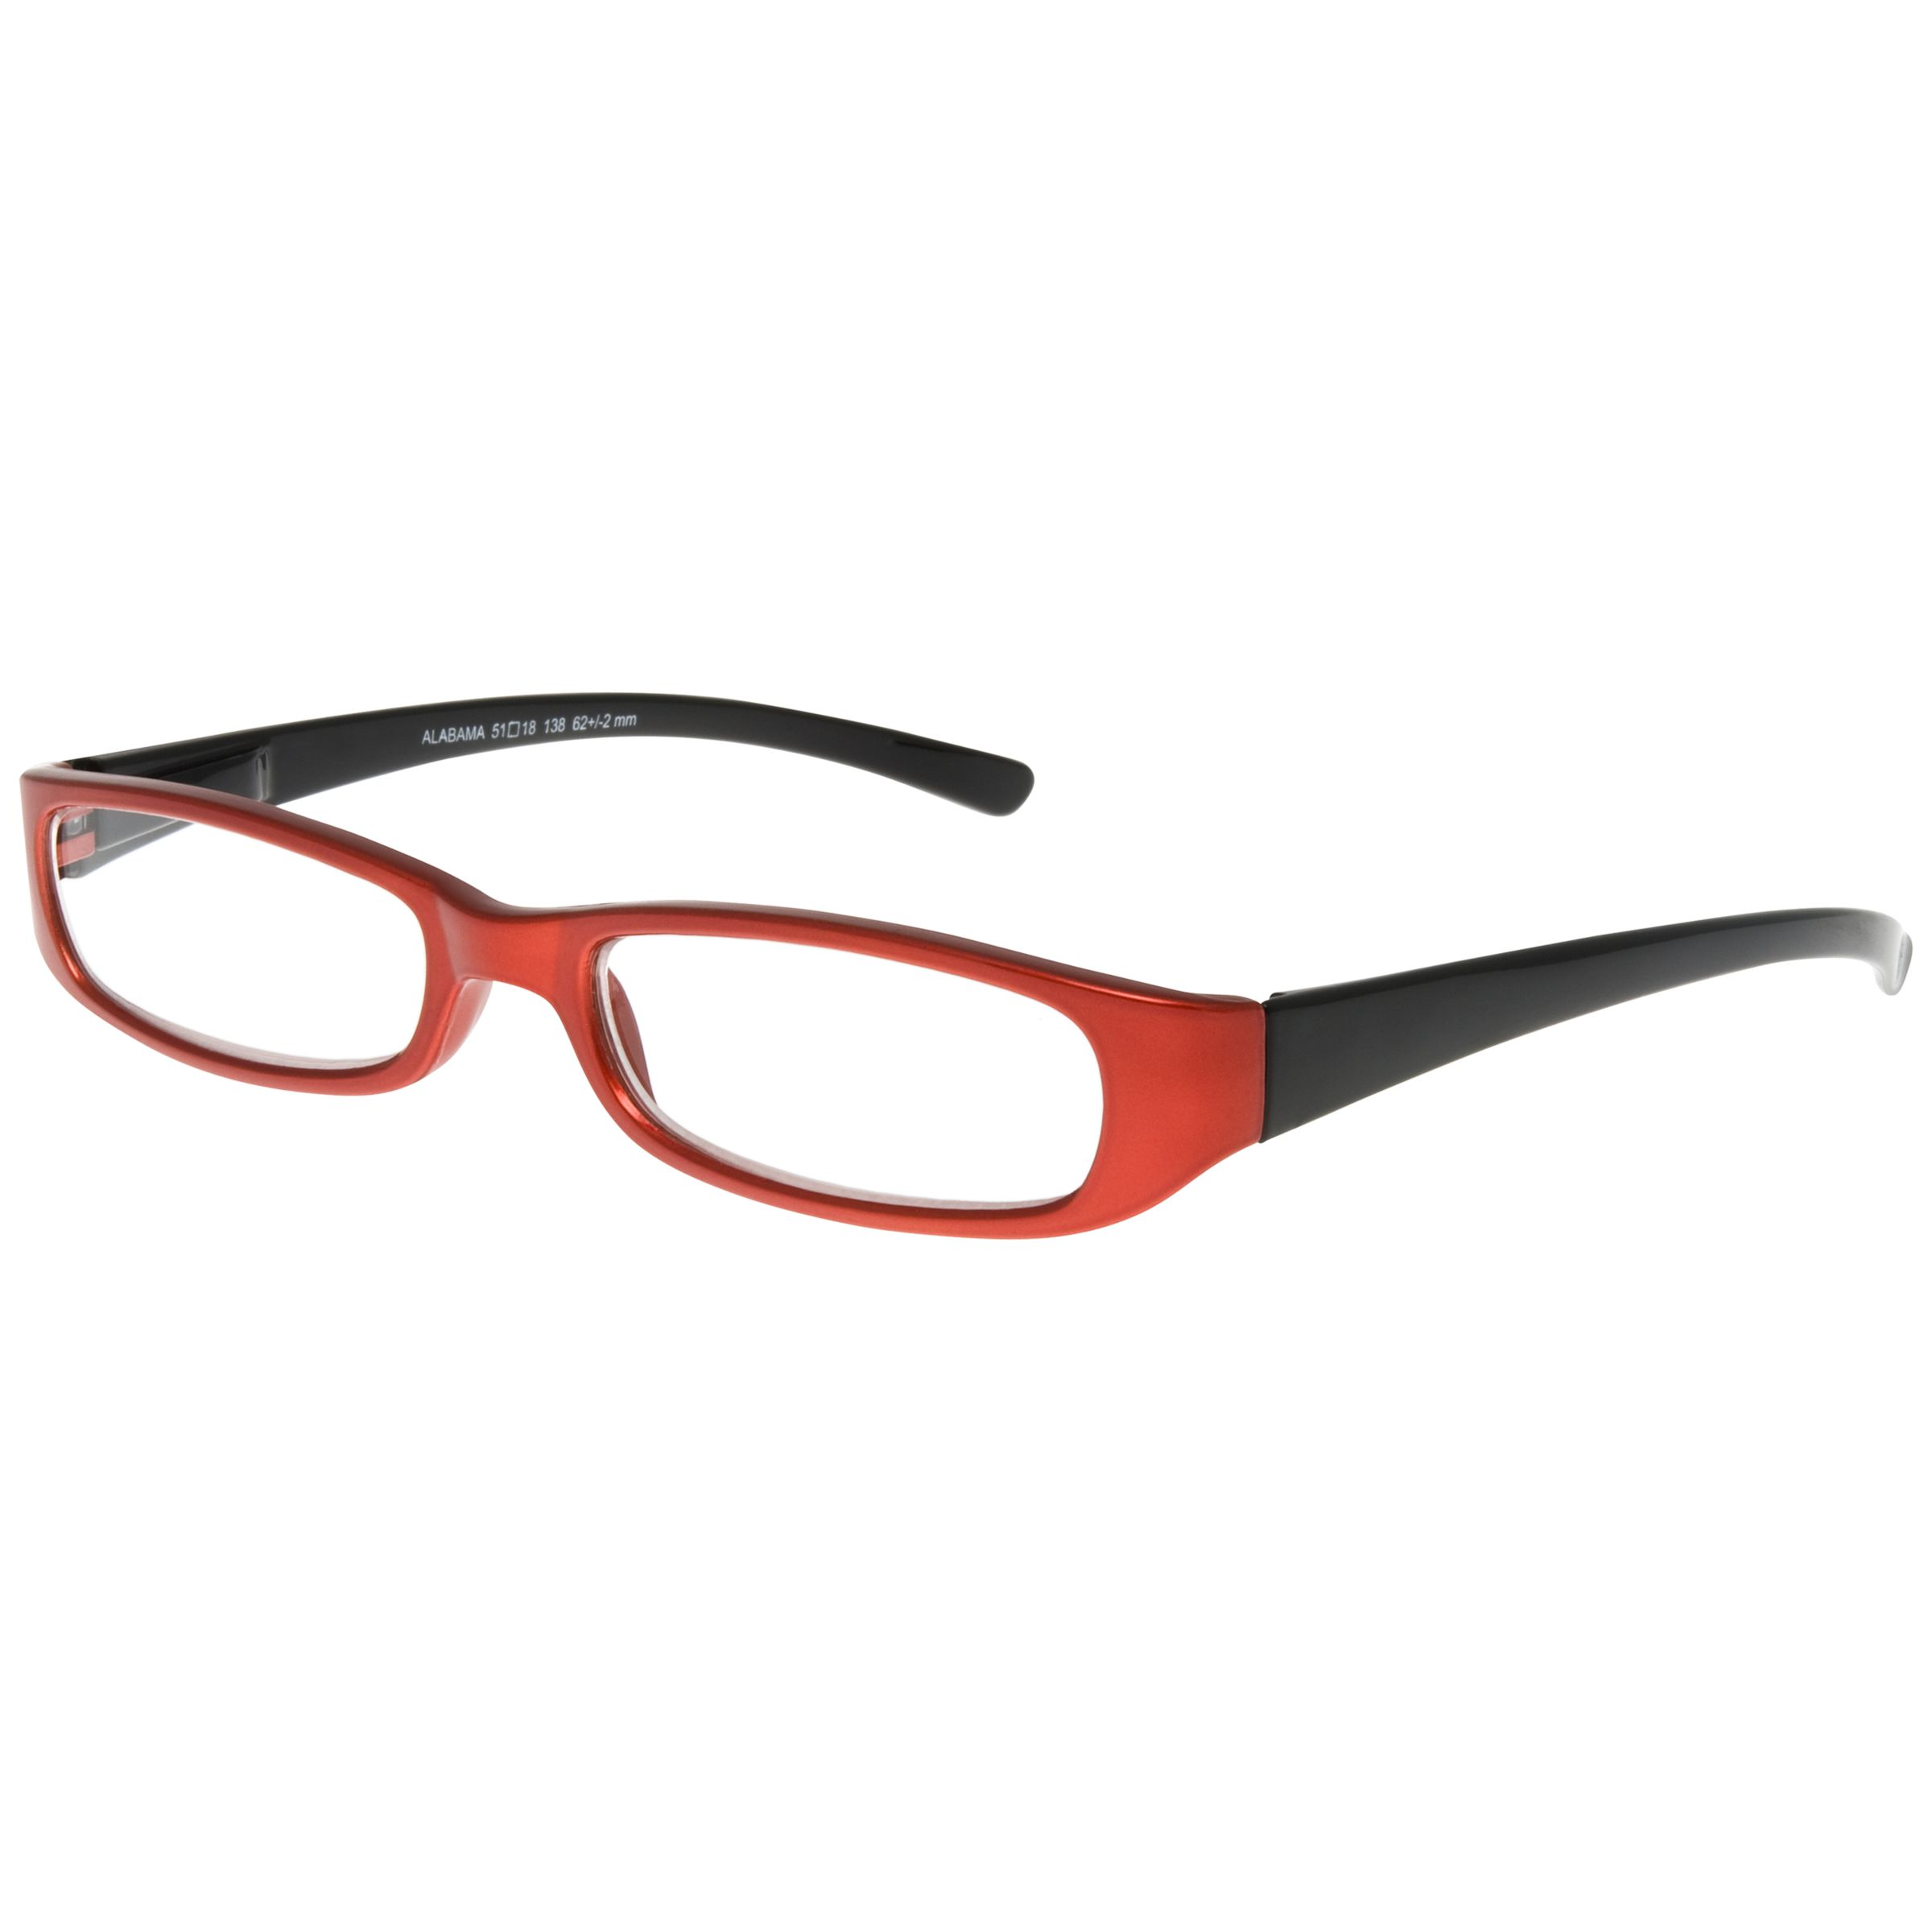 Magnif Eyes Magnif Eyes Unisex Ready Readers Alabama Glasses, Red